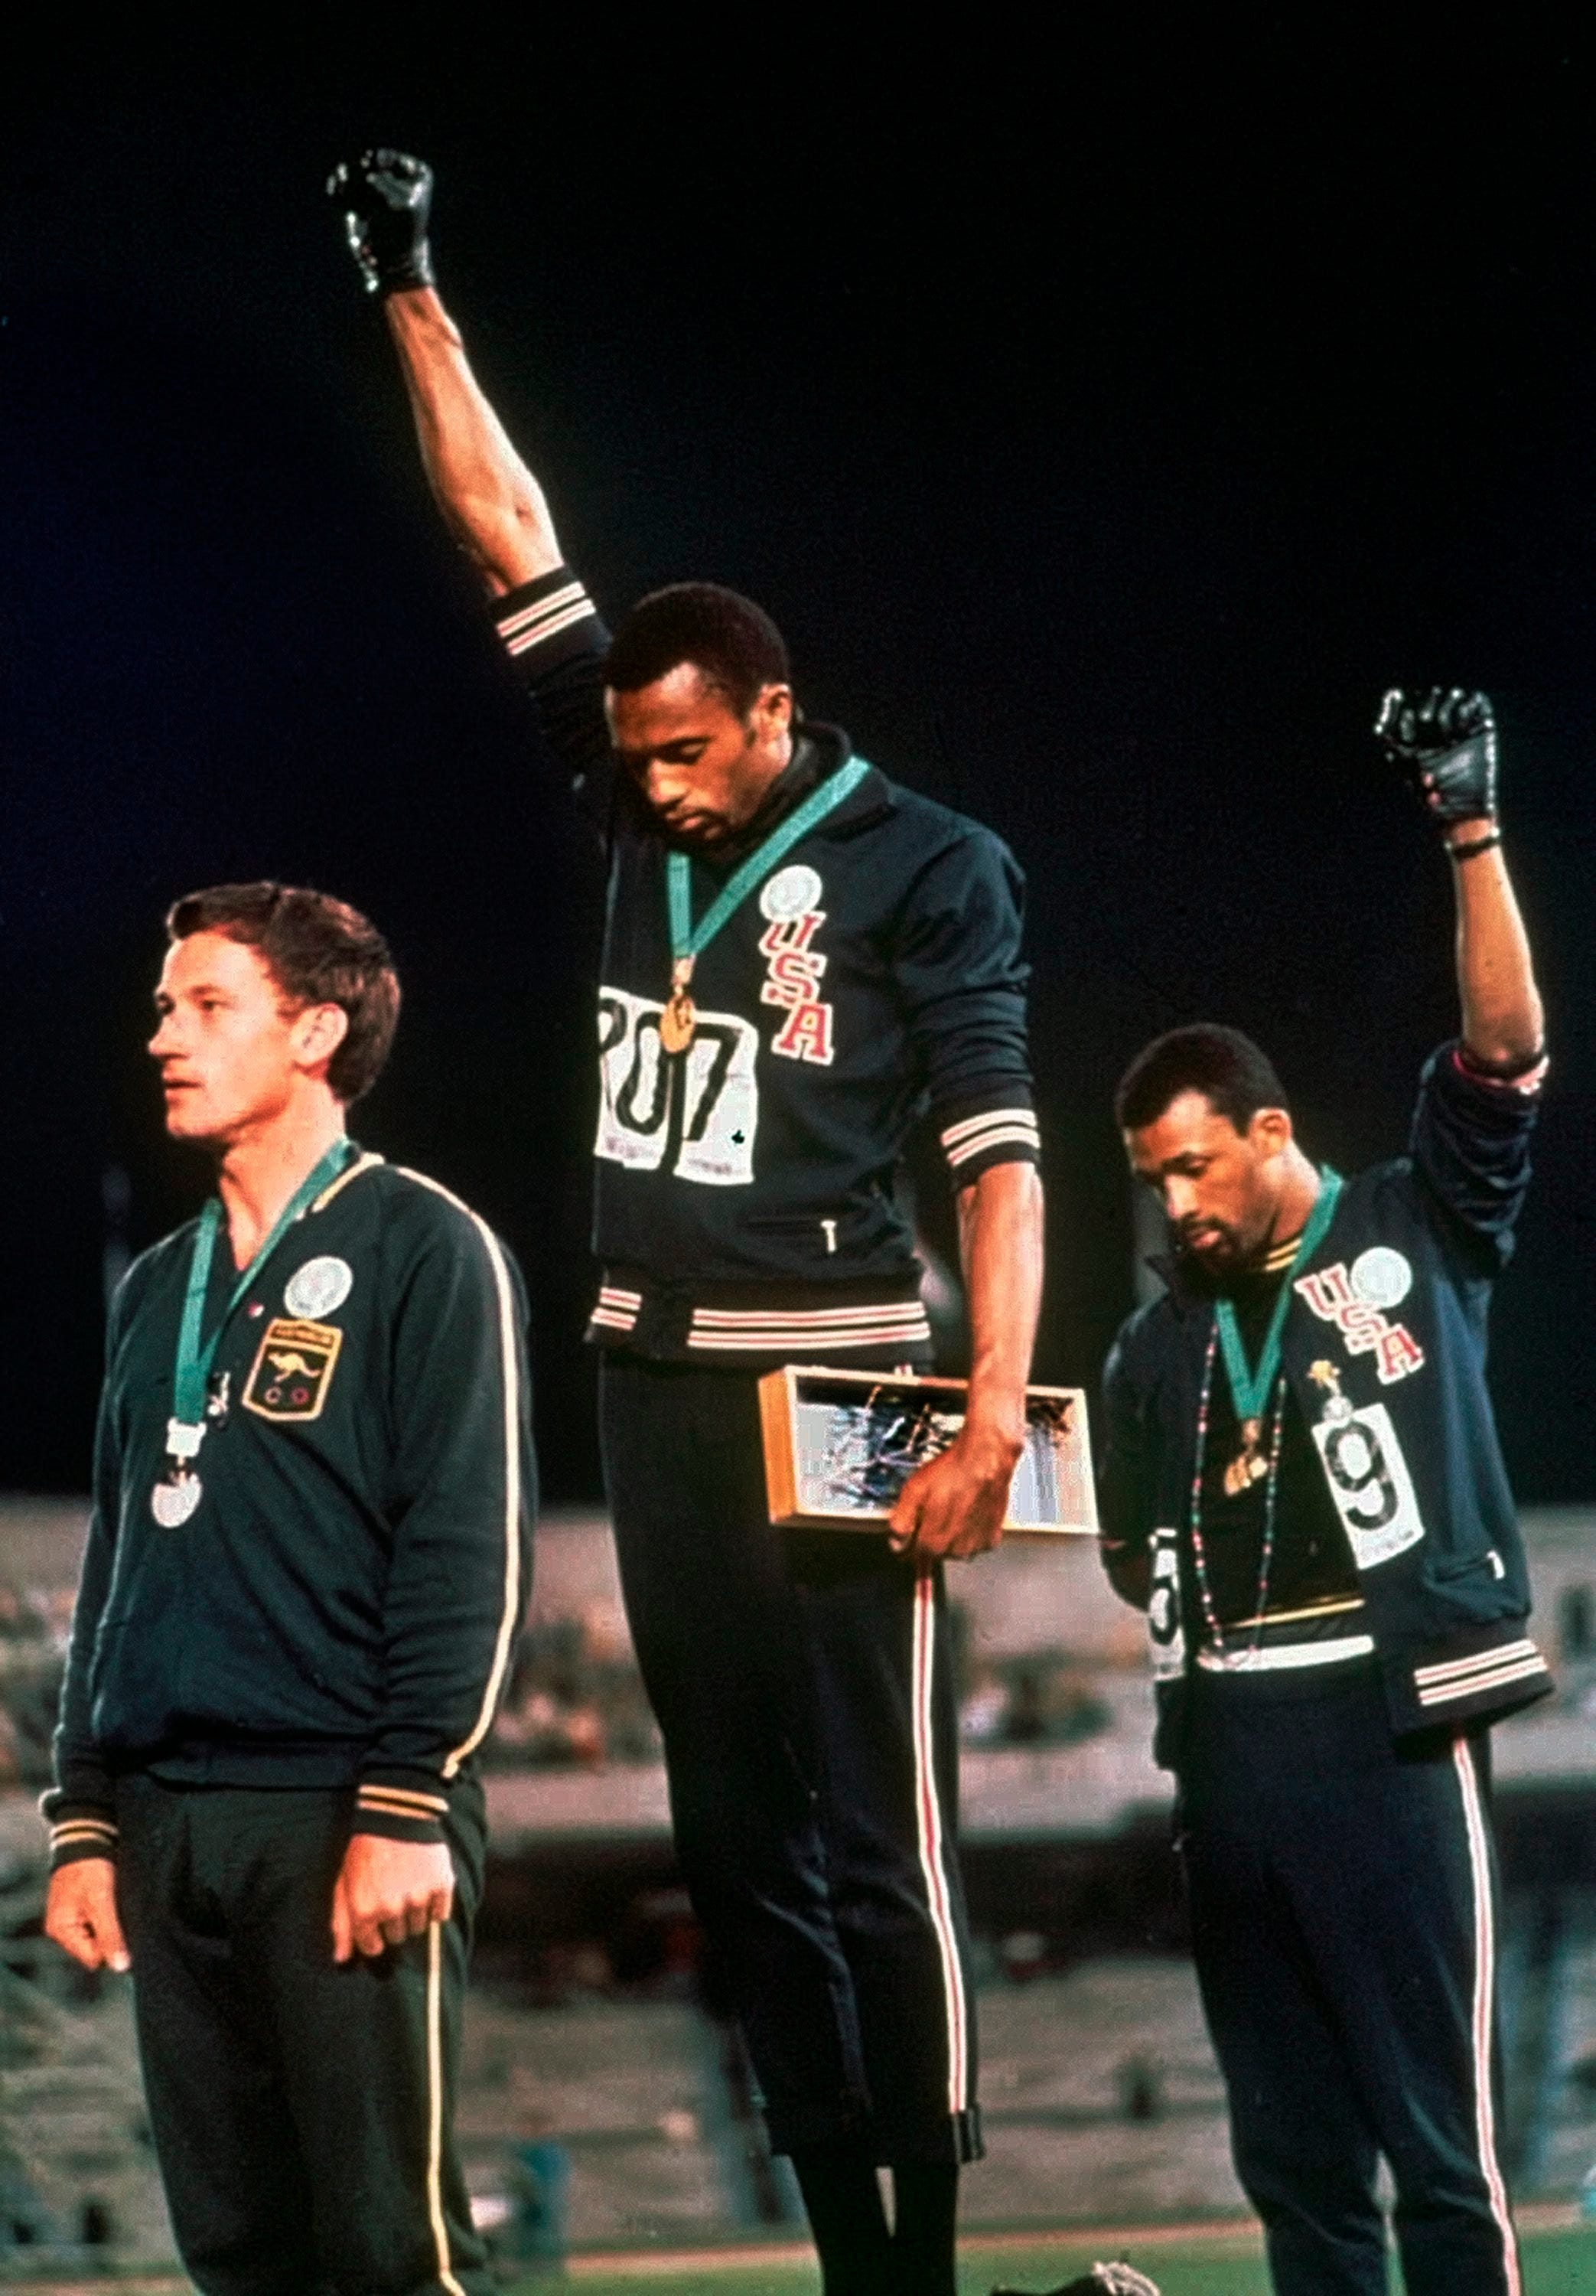 Today in sports history: Black Power salute at 1968 Summer Olympics